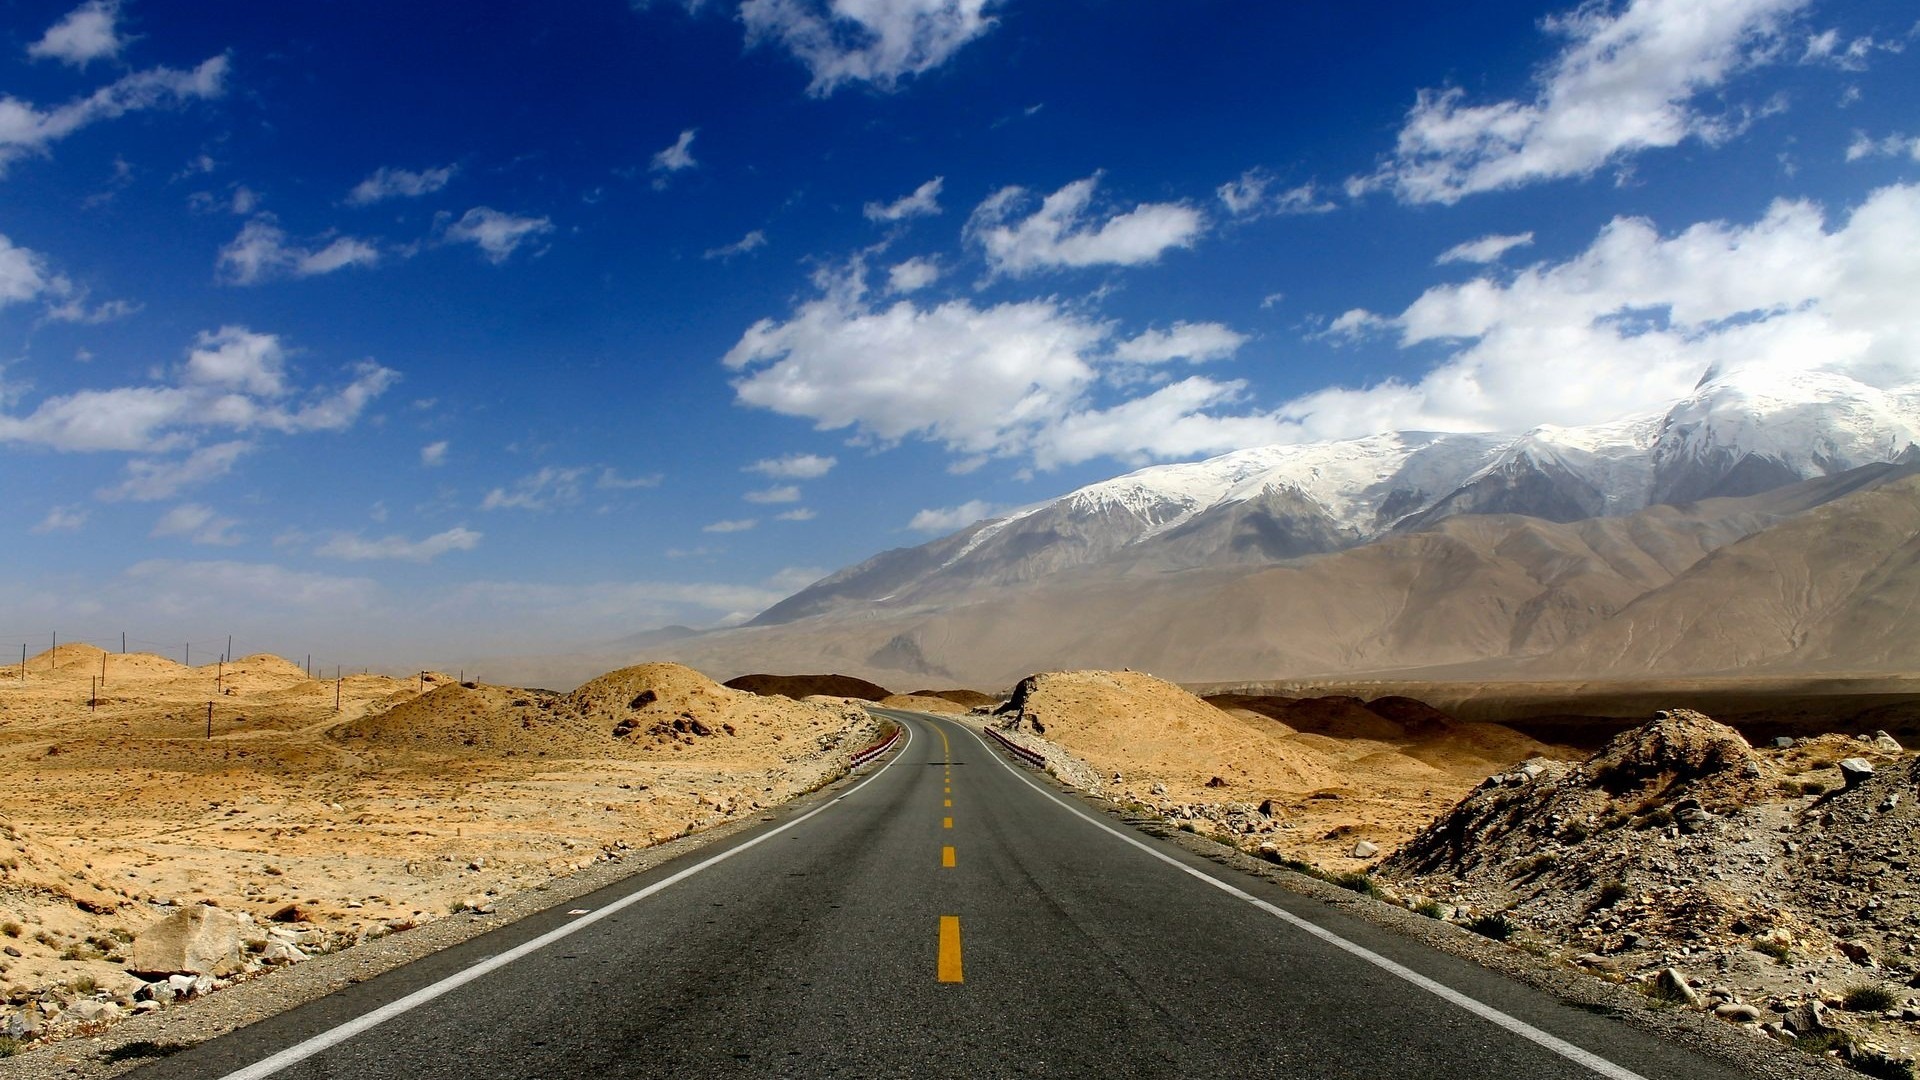 1920x1080 Karakoram Highway Pakistan China Road Wallpaper